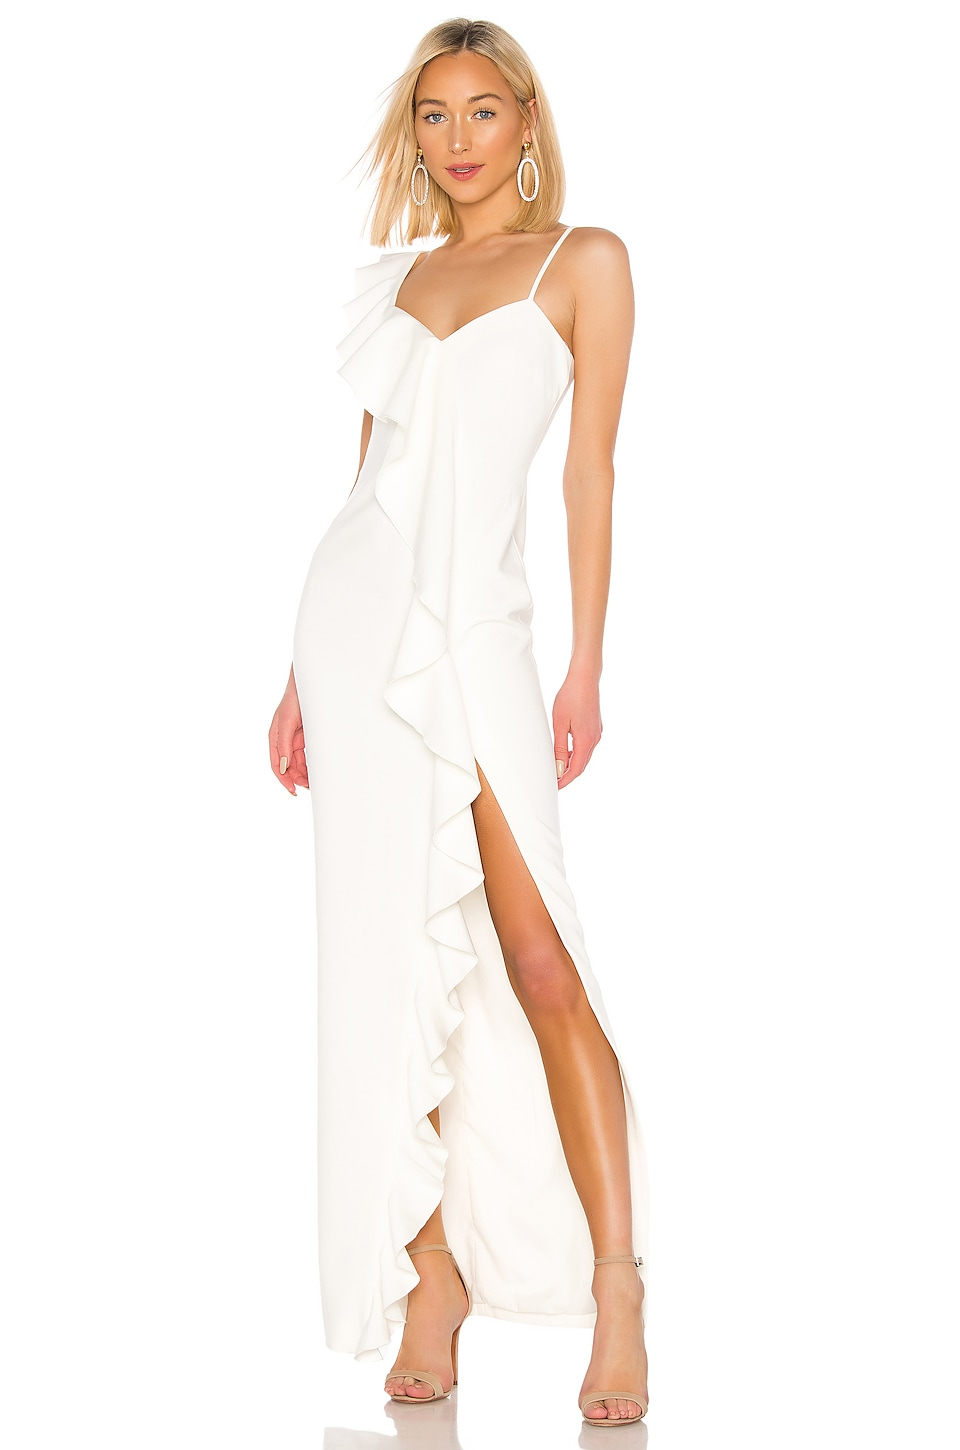 LIKELY Kilkenny Gown in White